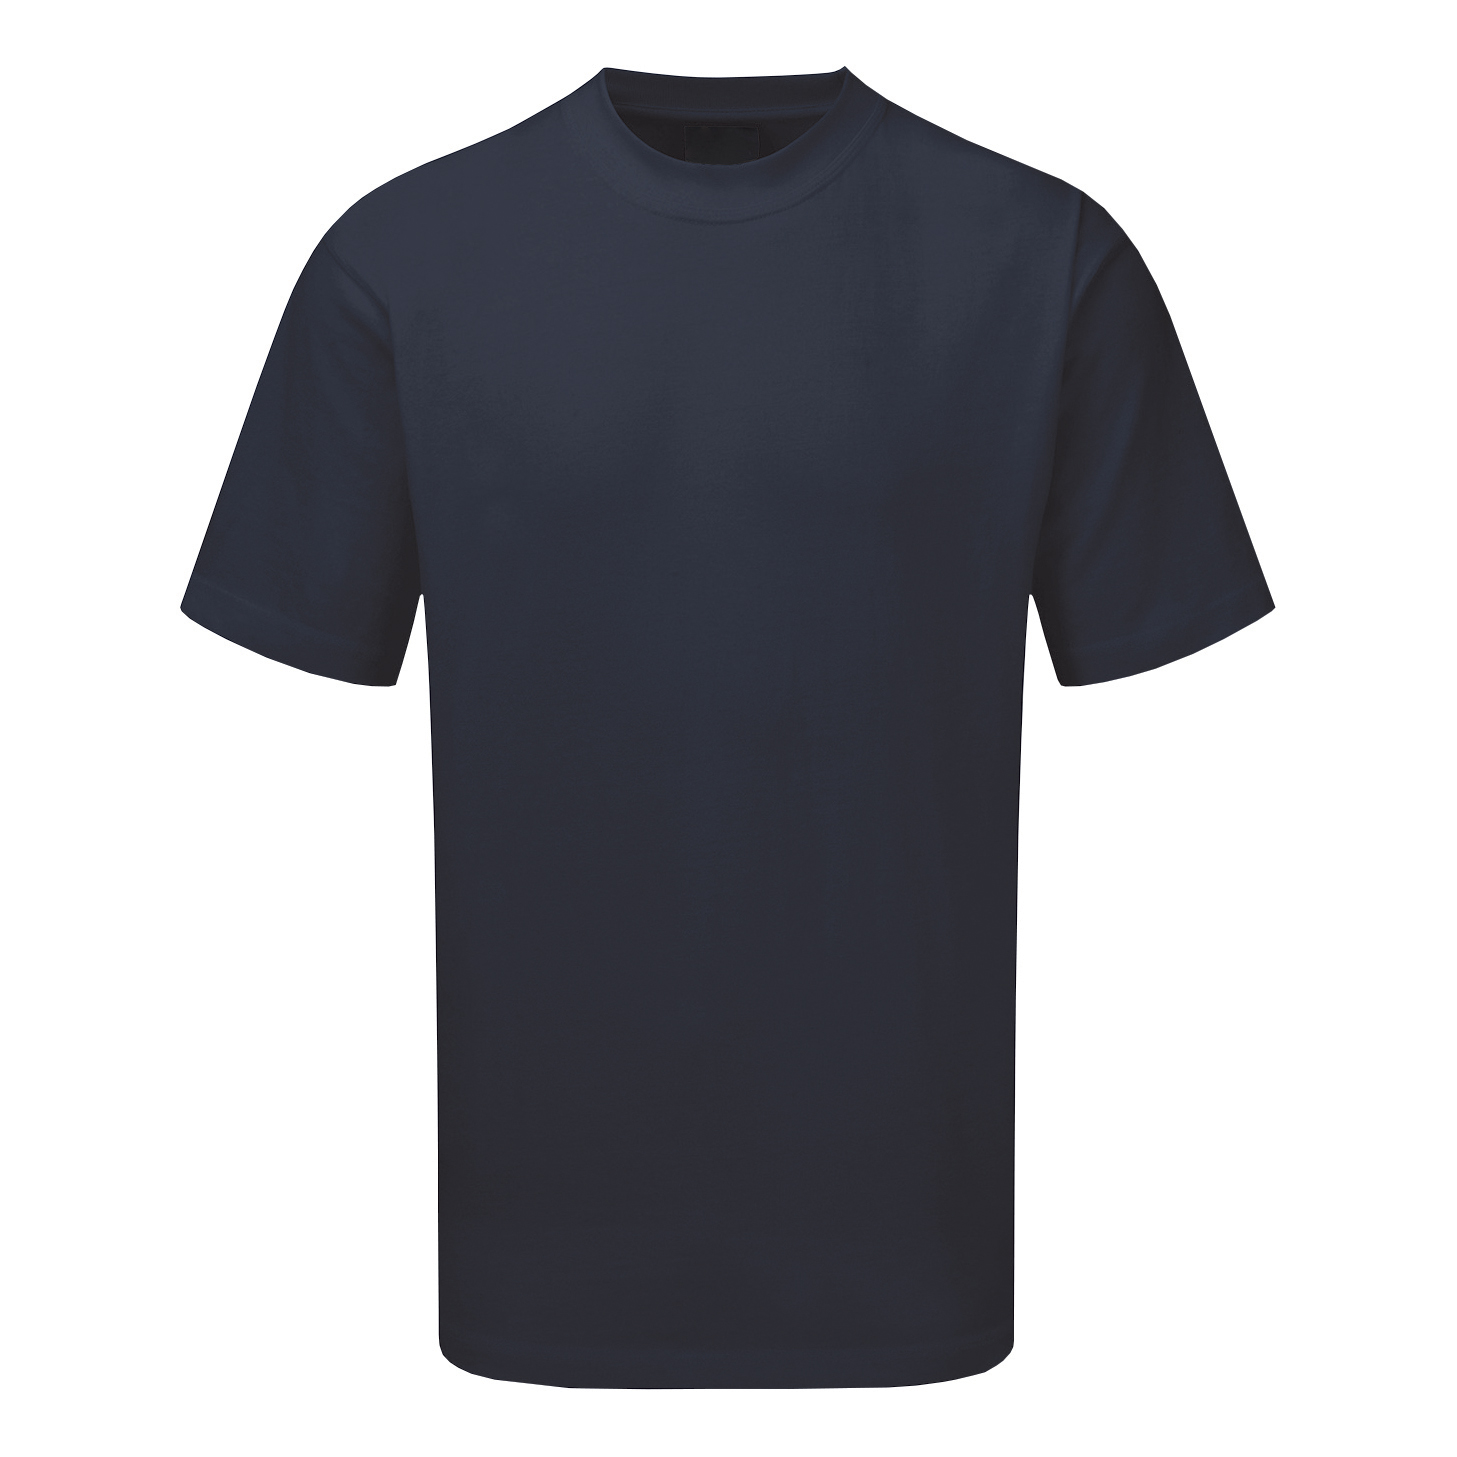 Click Workwear T-Shirt Heavyweight 180gsm XS Navy Blue Ref CLCTSHWNXS *Up to 3 Day Leadtime*